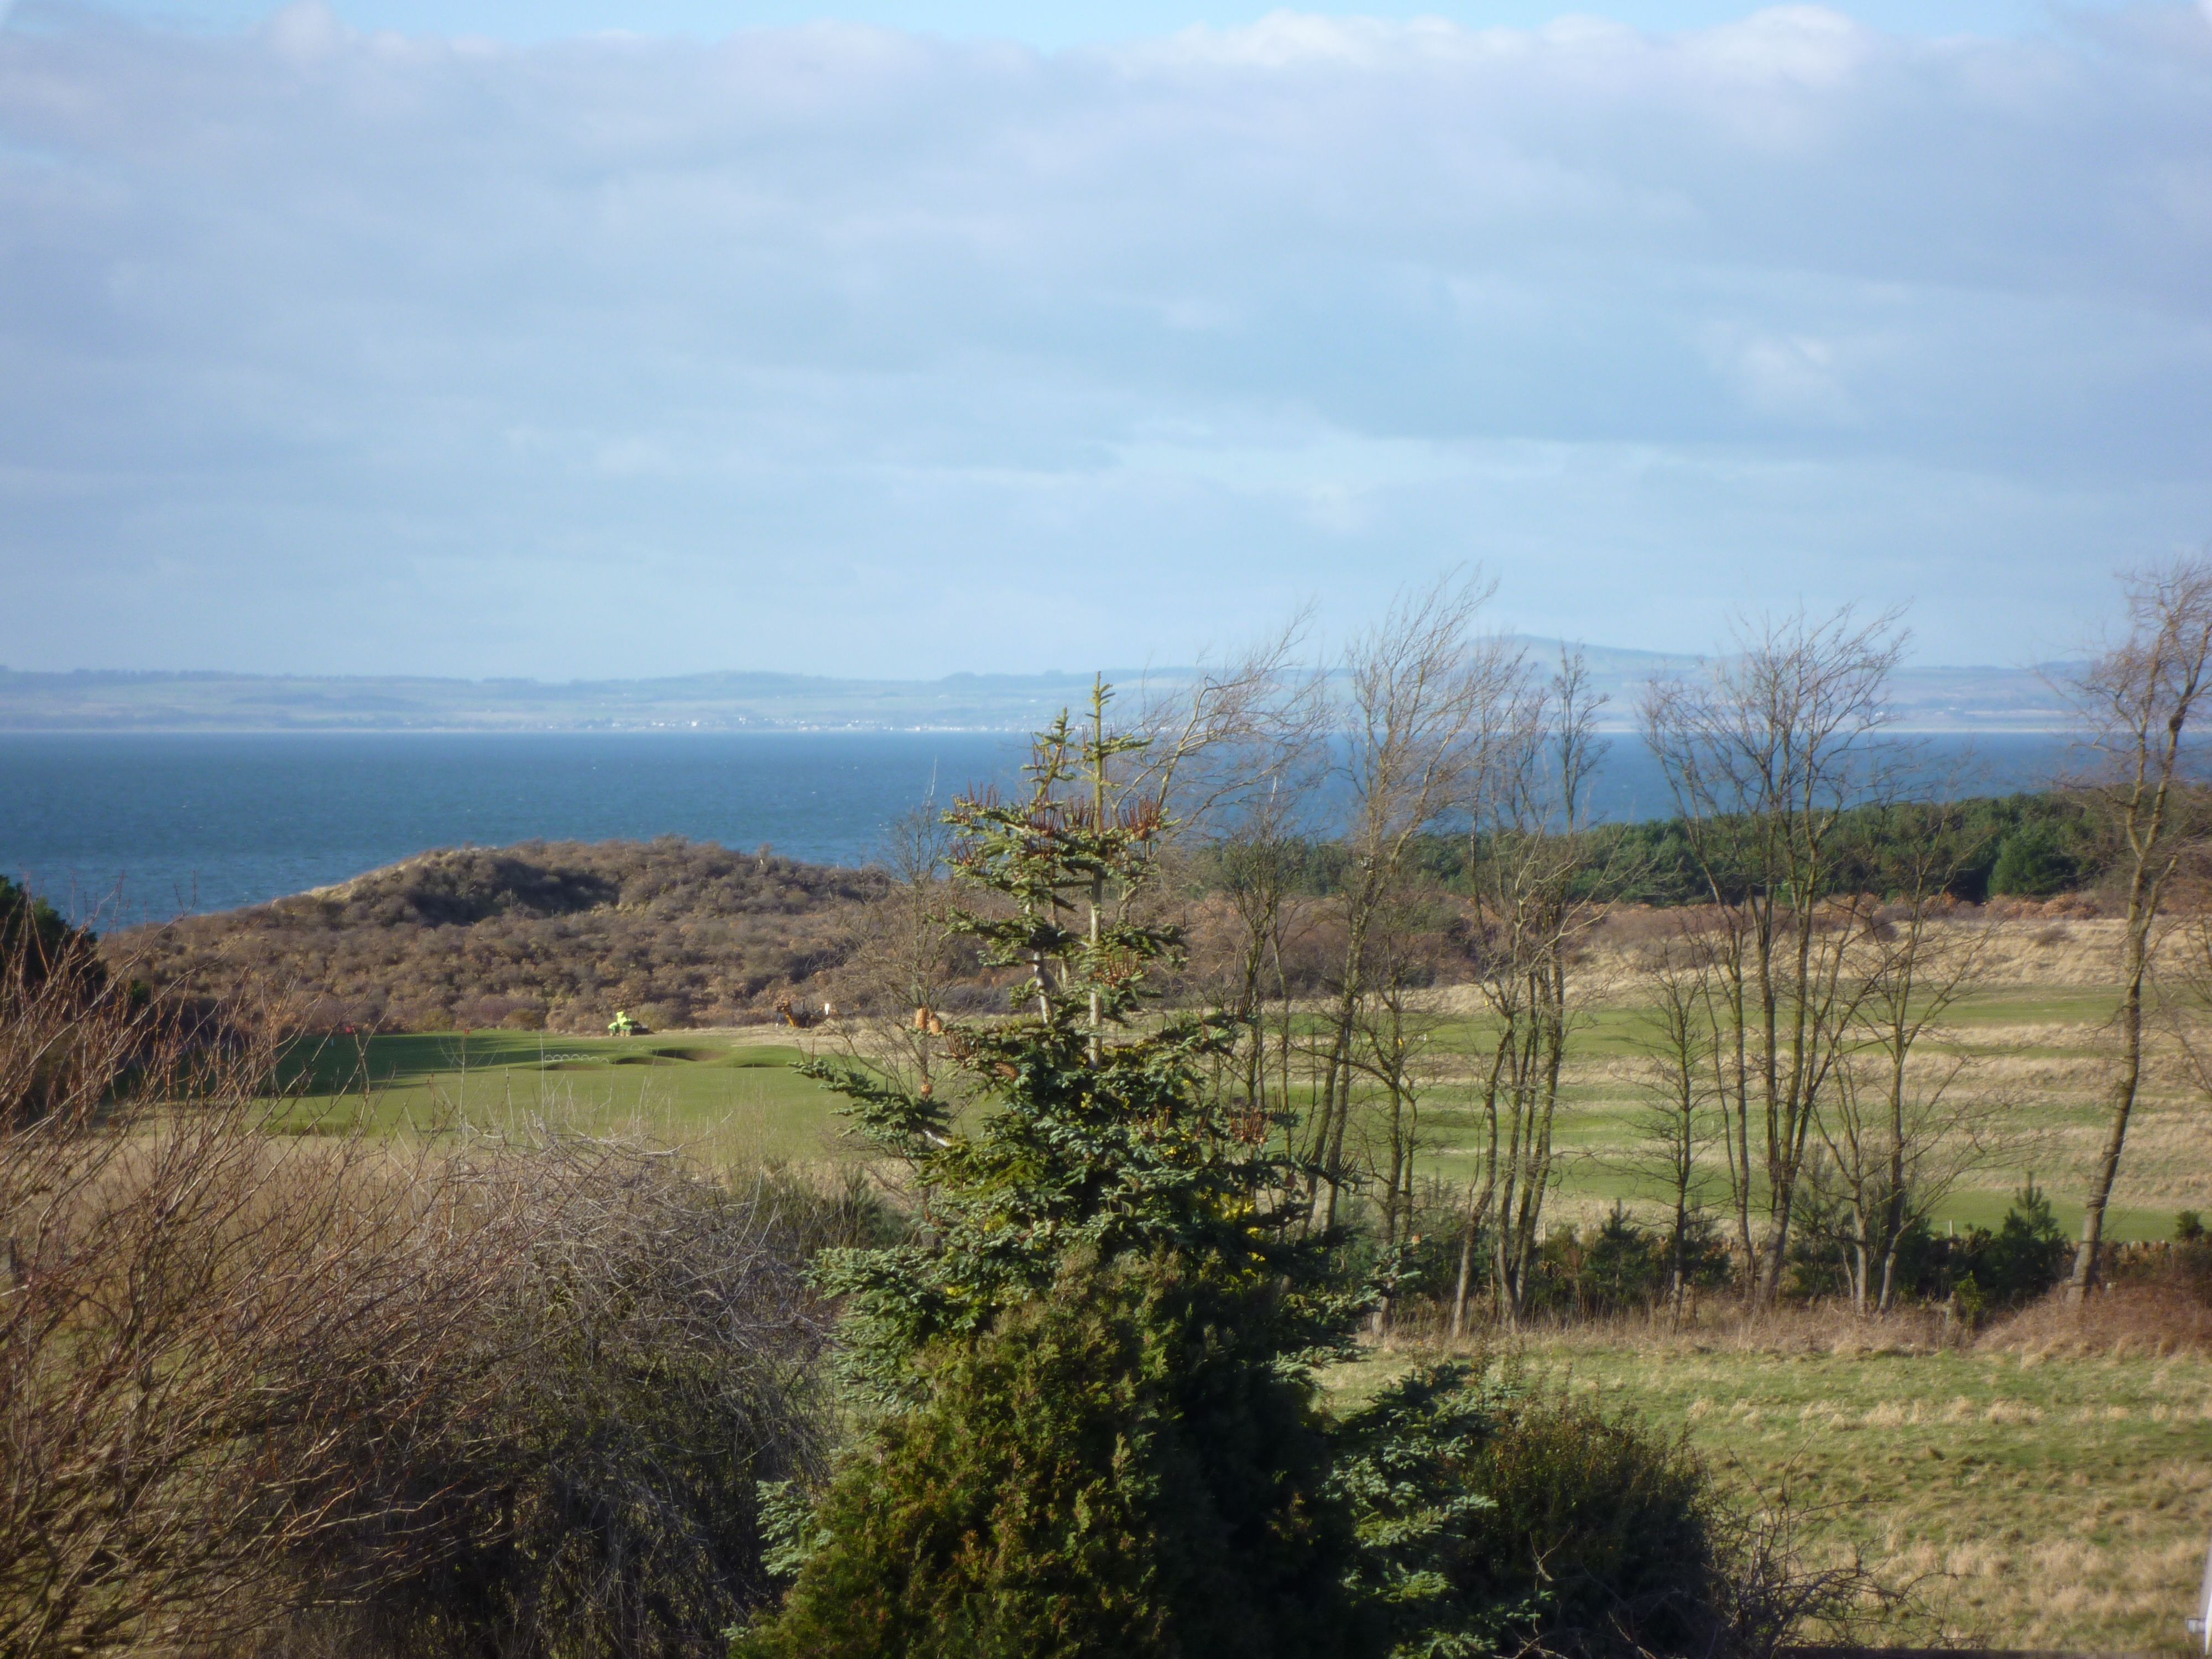 View over golf course and sea.